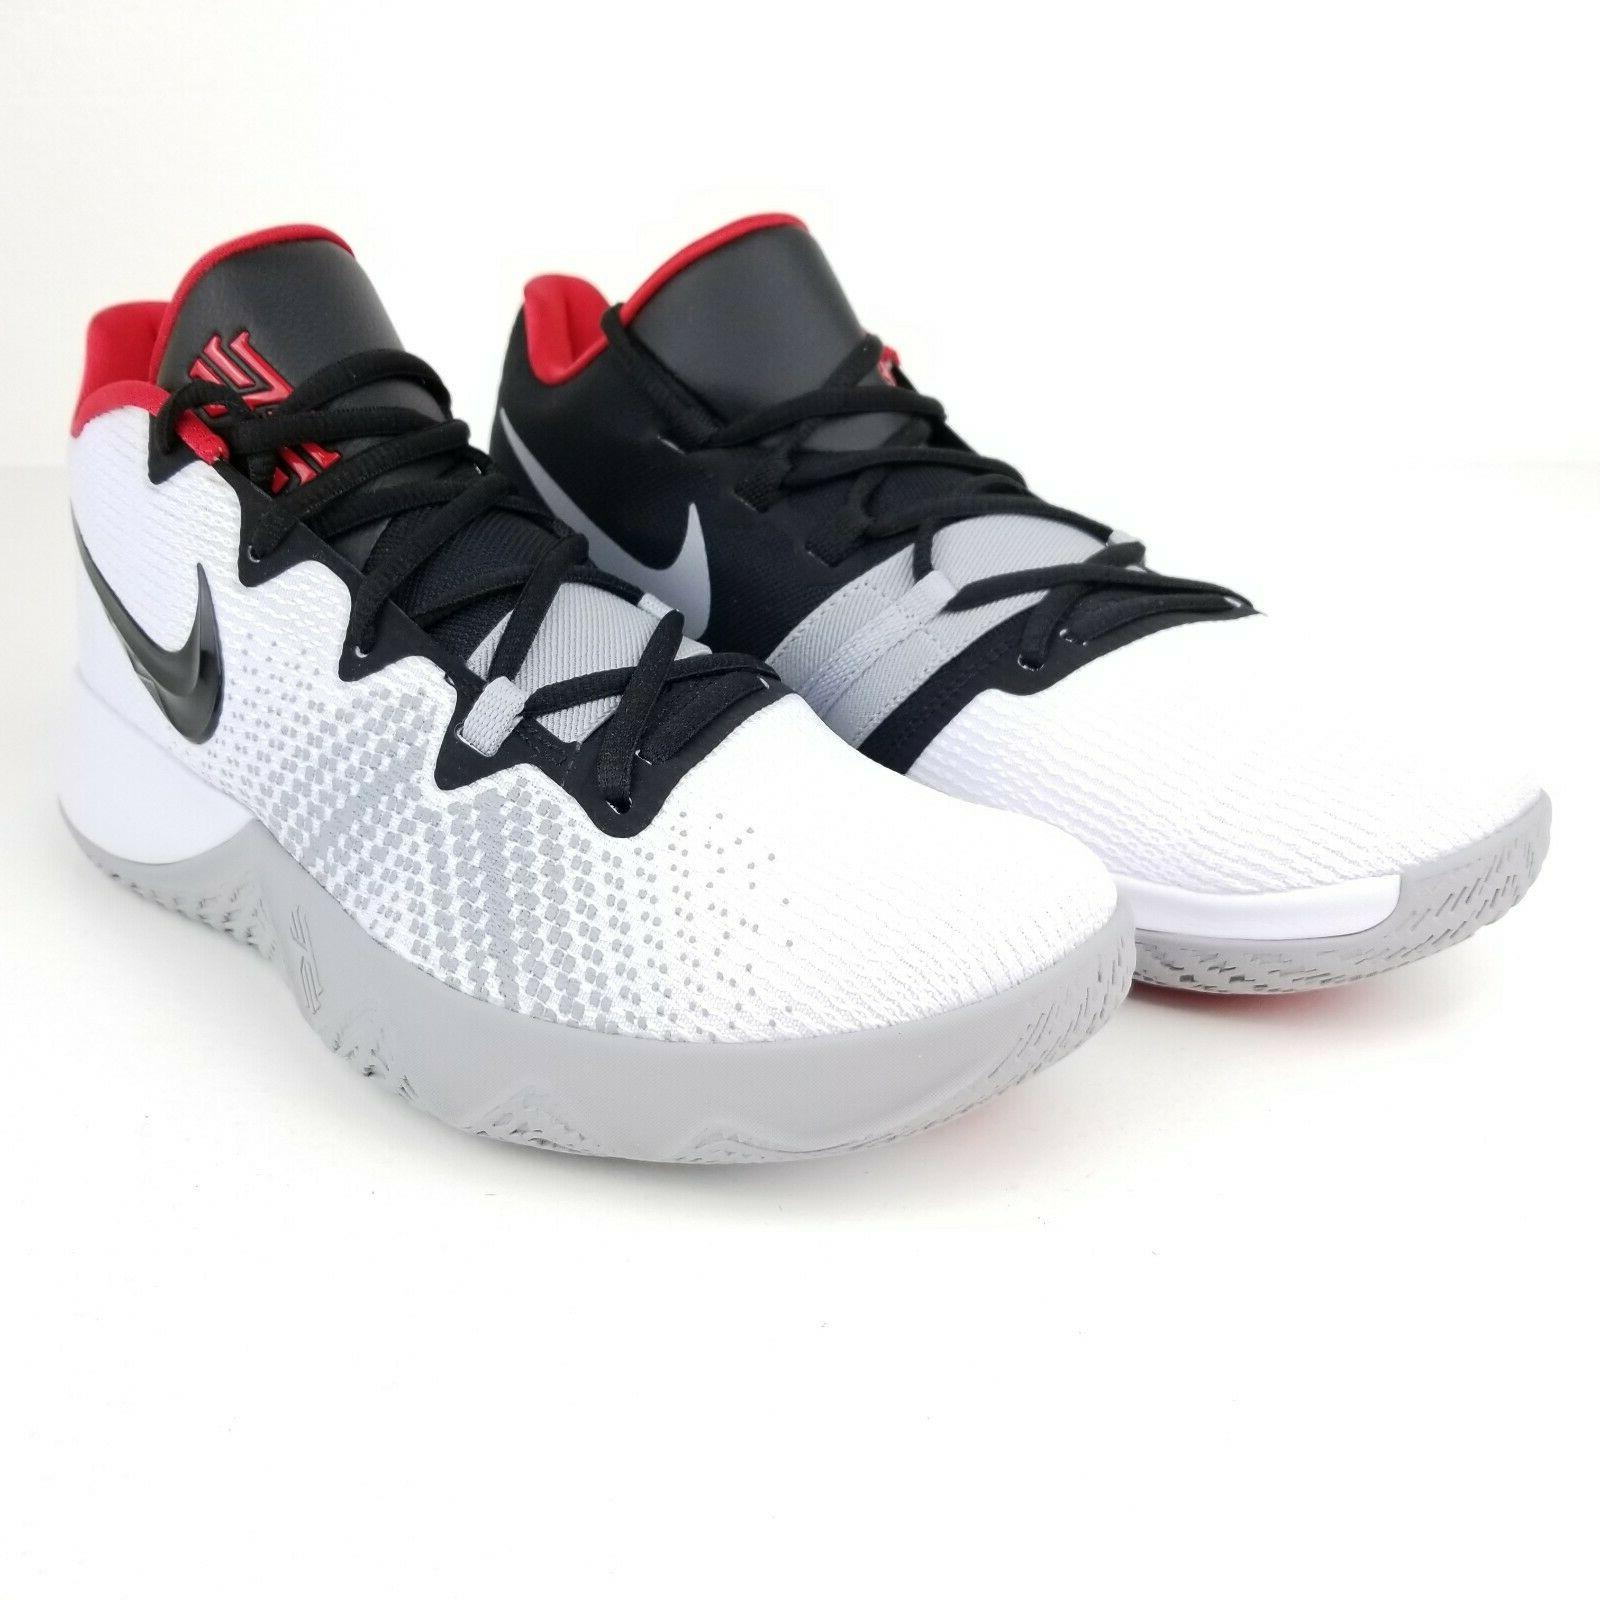 kyrie flytrap men s basketball shoes aa7071